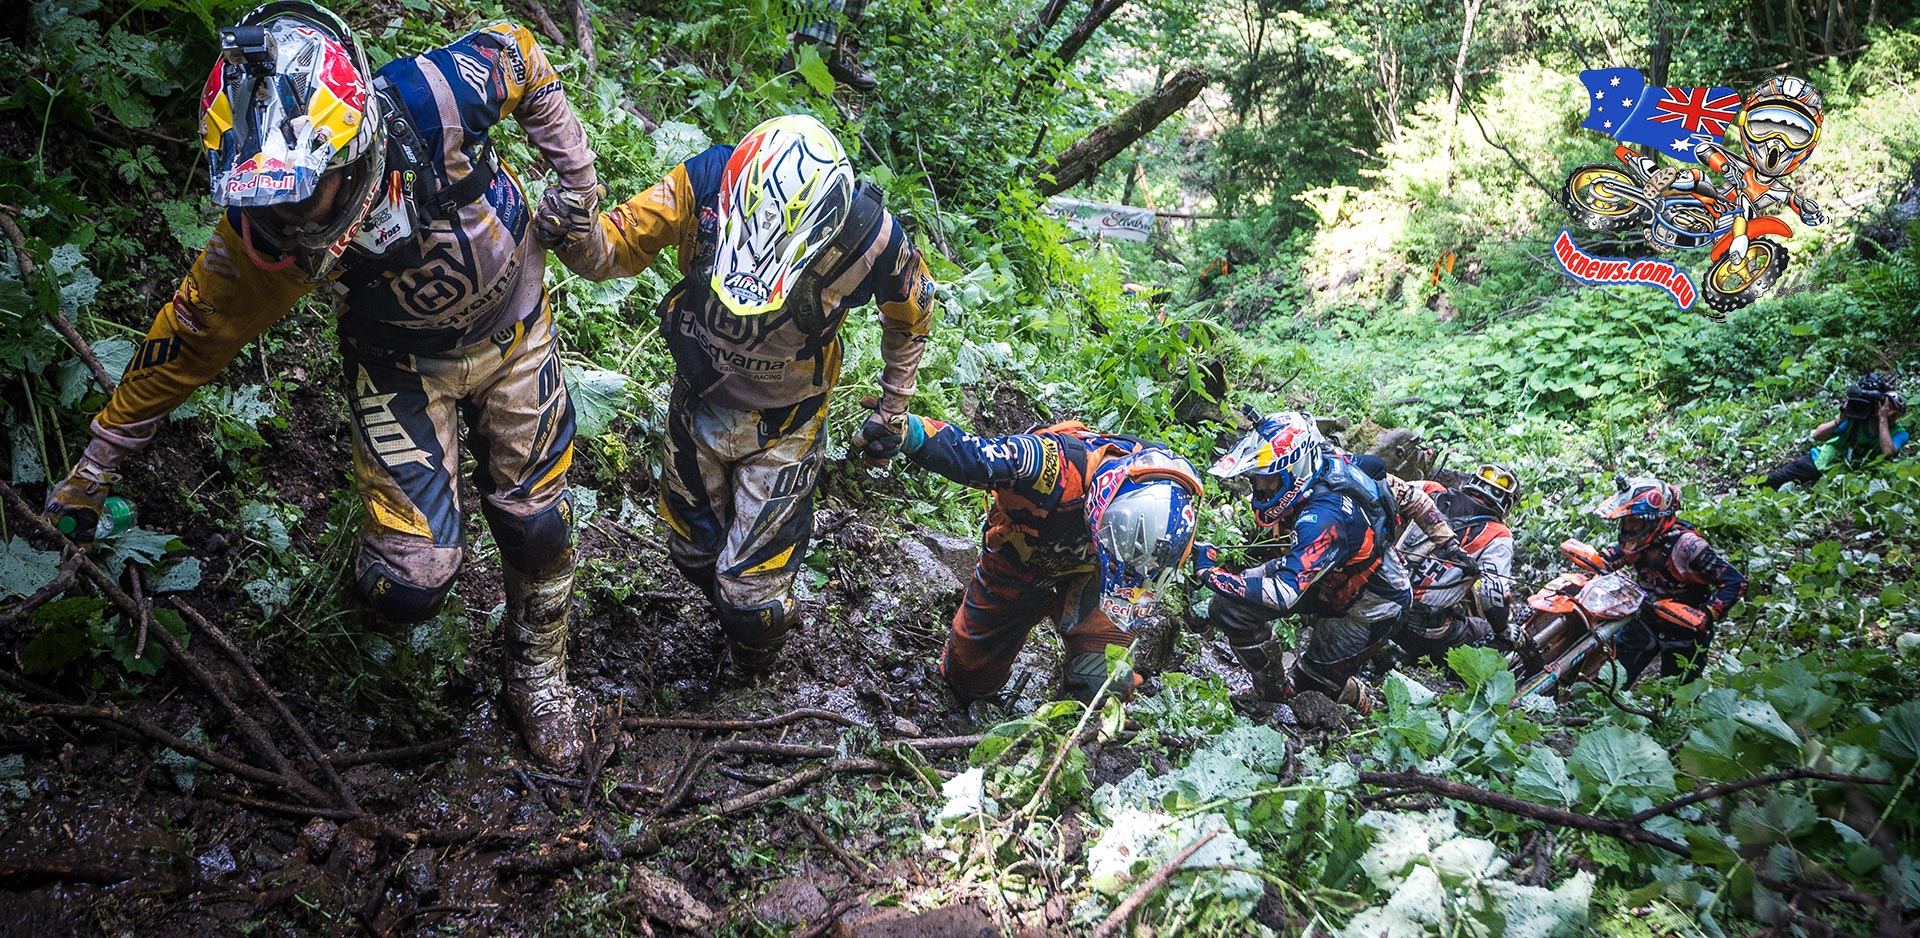 Riders help each other drag their machines up a slope that proved urideable